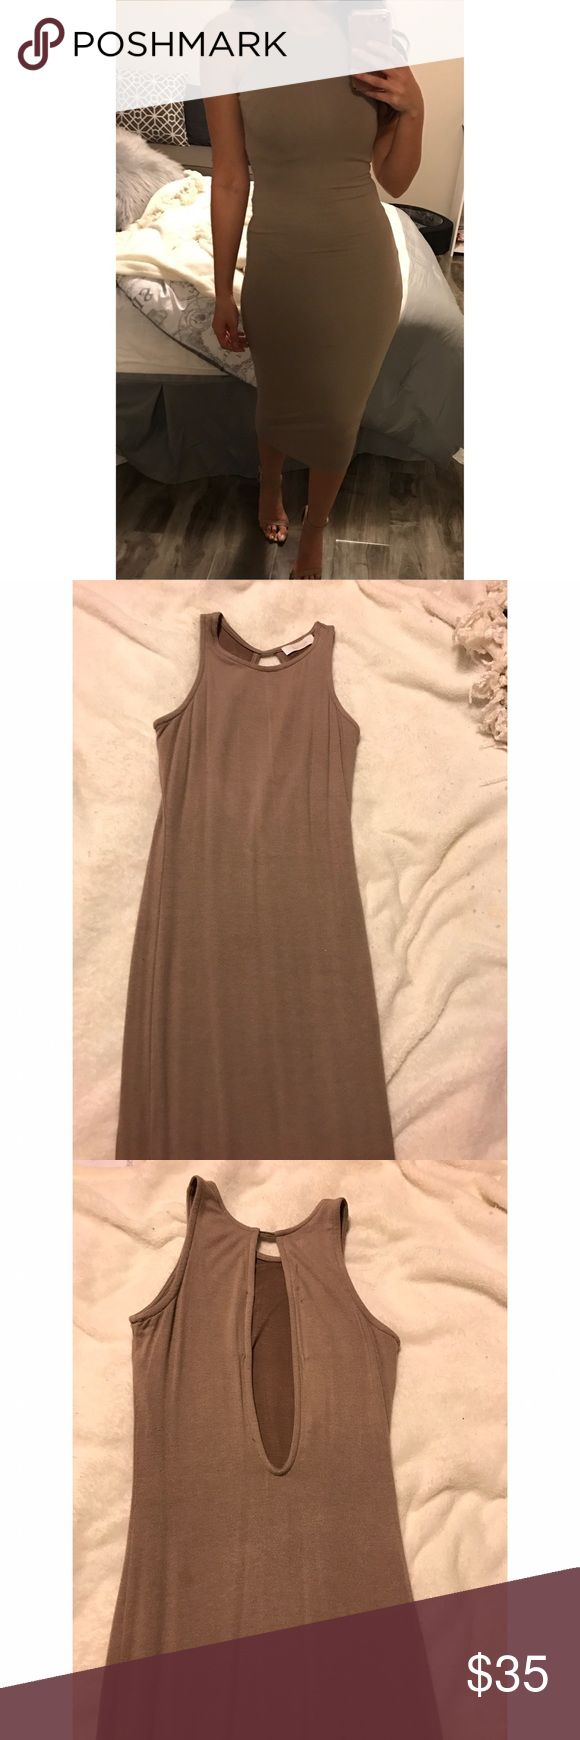 Nude Dress Worn 2-3 times. Good condition. Nude bodycon dress. Goes over knees. Open back. Kaitlyn Dresses